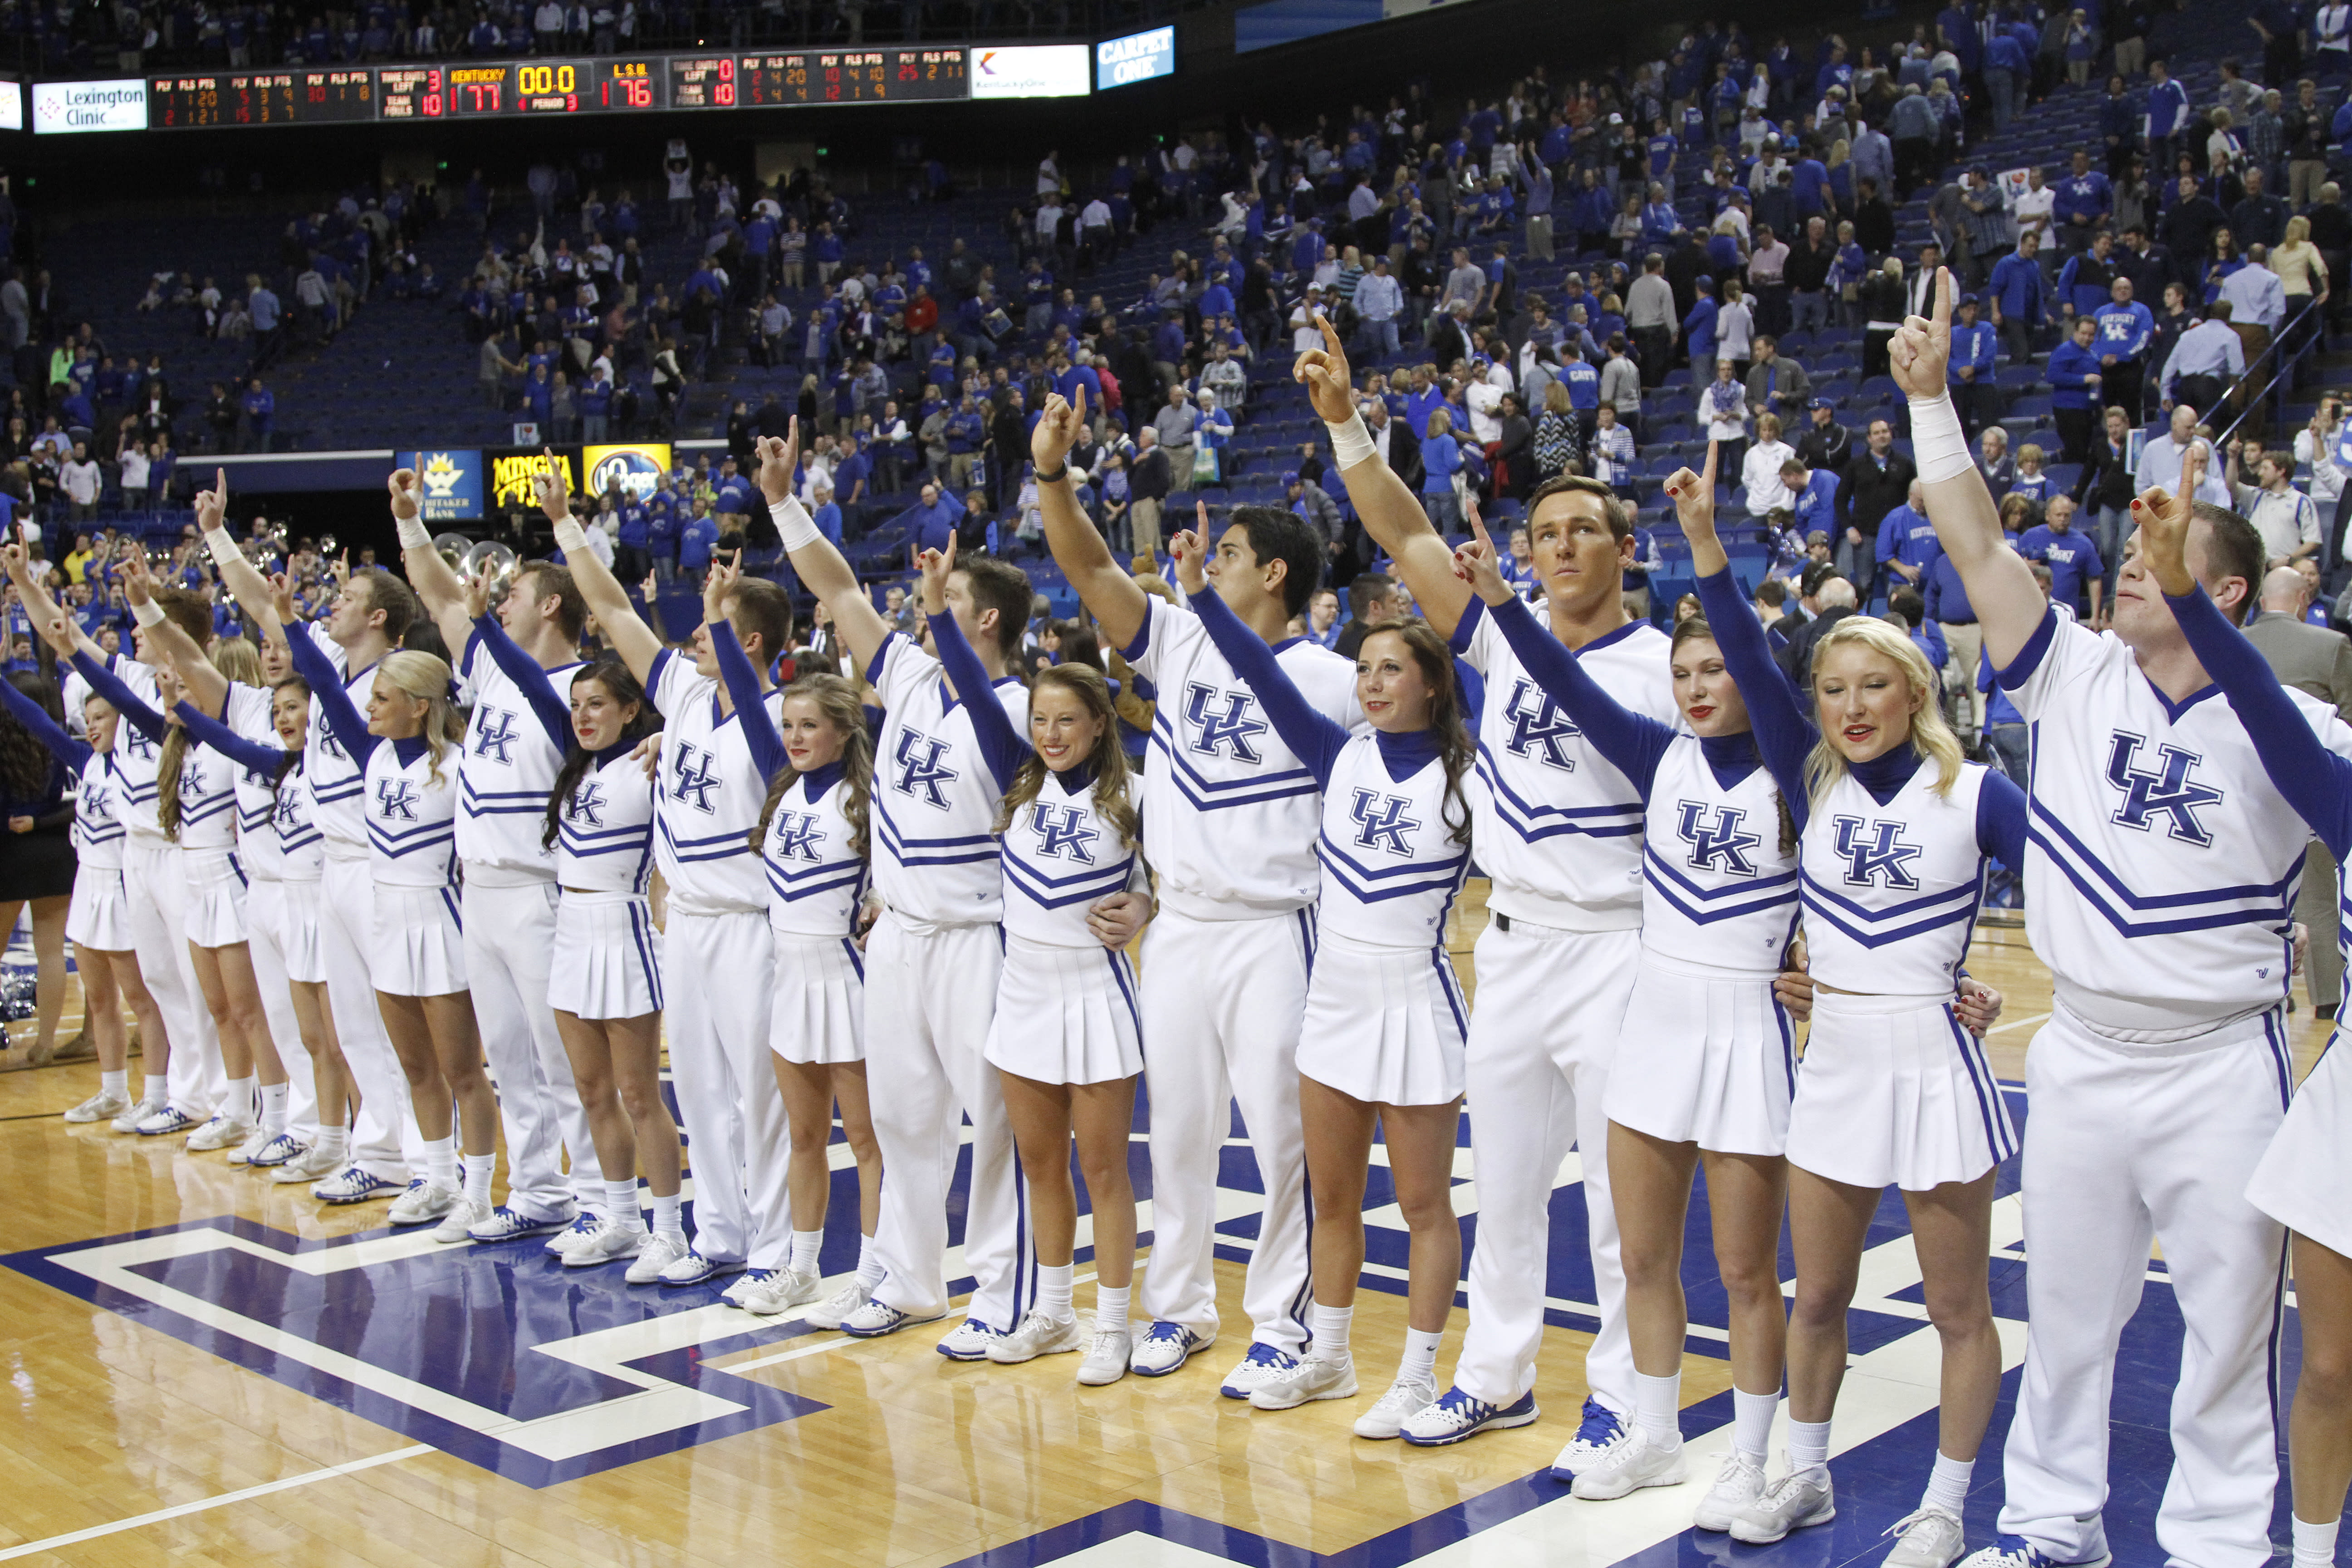 University of Kentucky fires ALL four cheerleading coaches